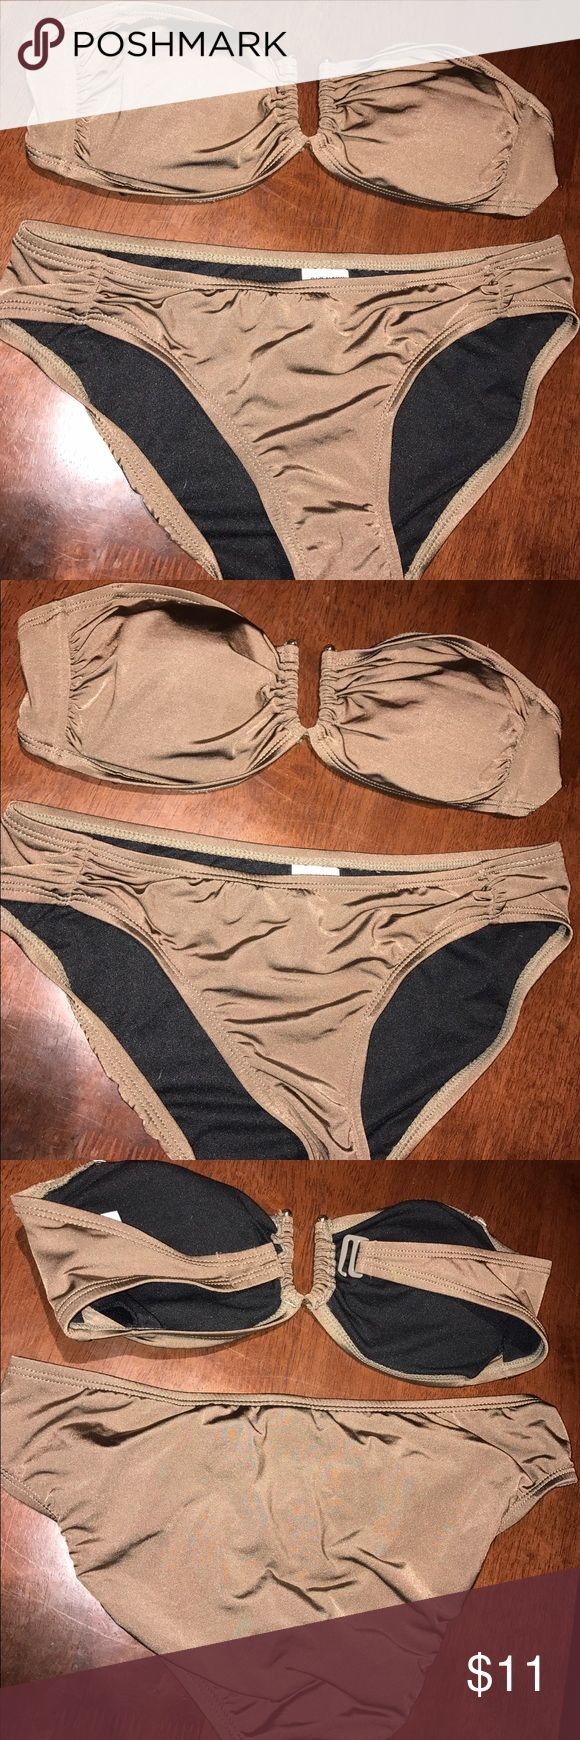 Old Navy bathing suit size XS Olive green/ brown earthy color Old Navy bikini, both top and bottom are size XS. Top is a strapless bandeau style too with u-shaped metal front accent, and metal back closure. NWOT Old Navy Swim Bikinis